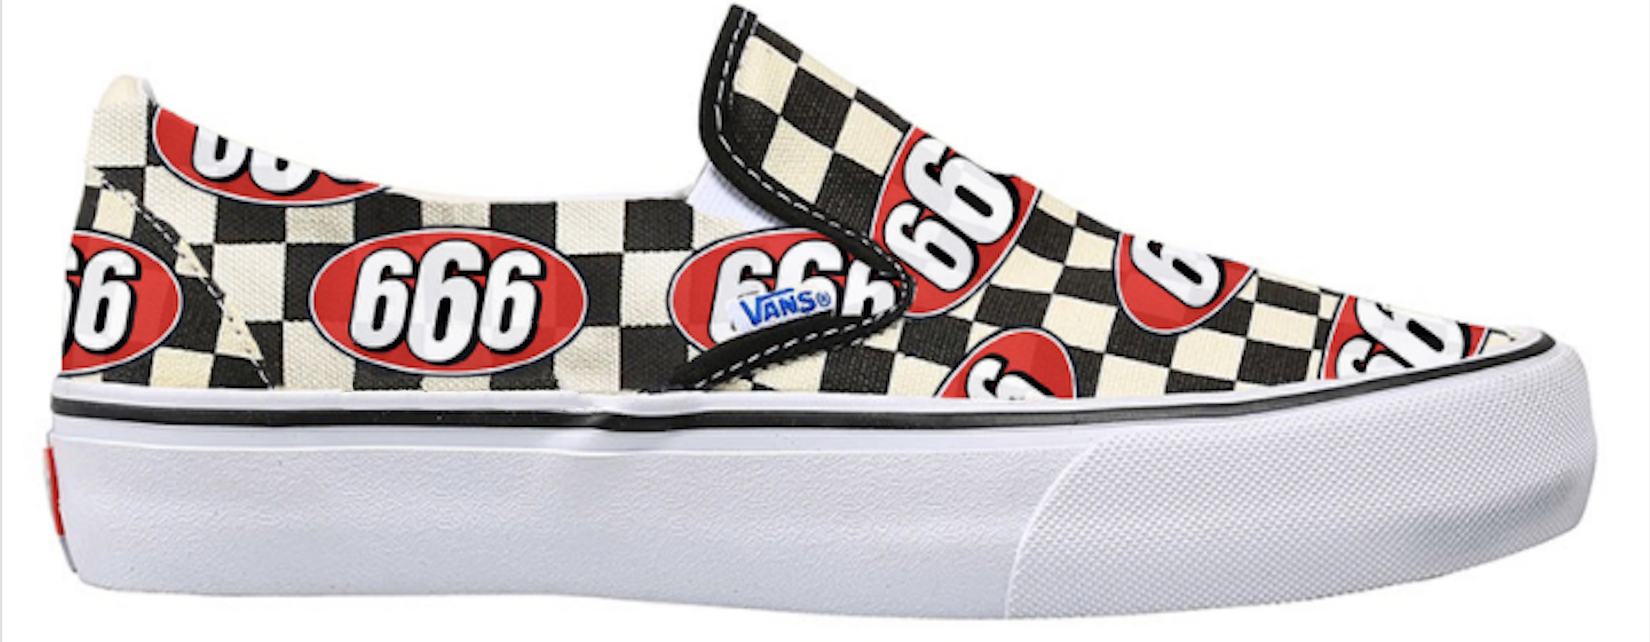 Slip-On Supreme 666 Checker